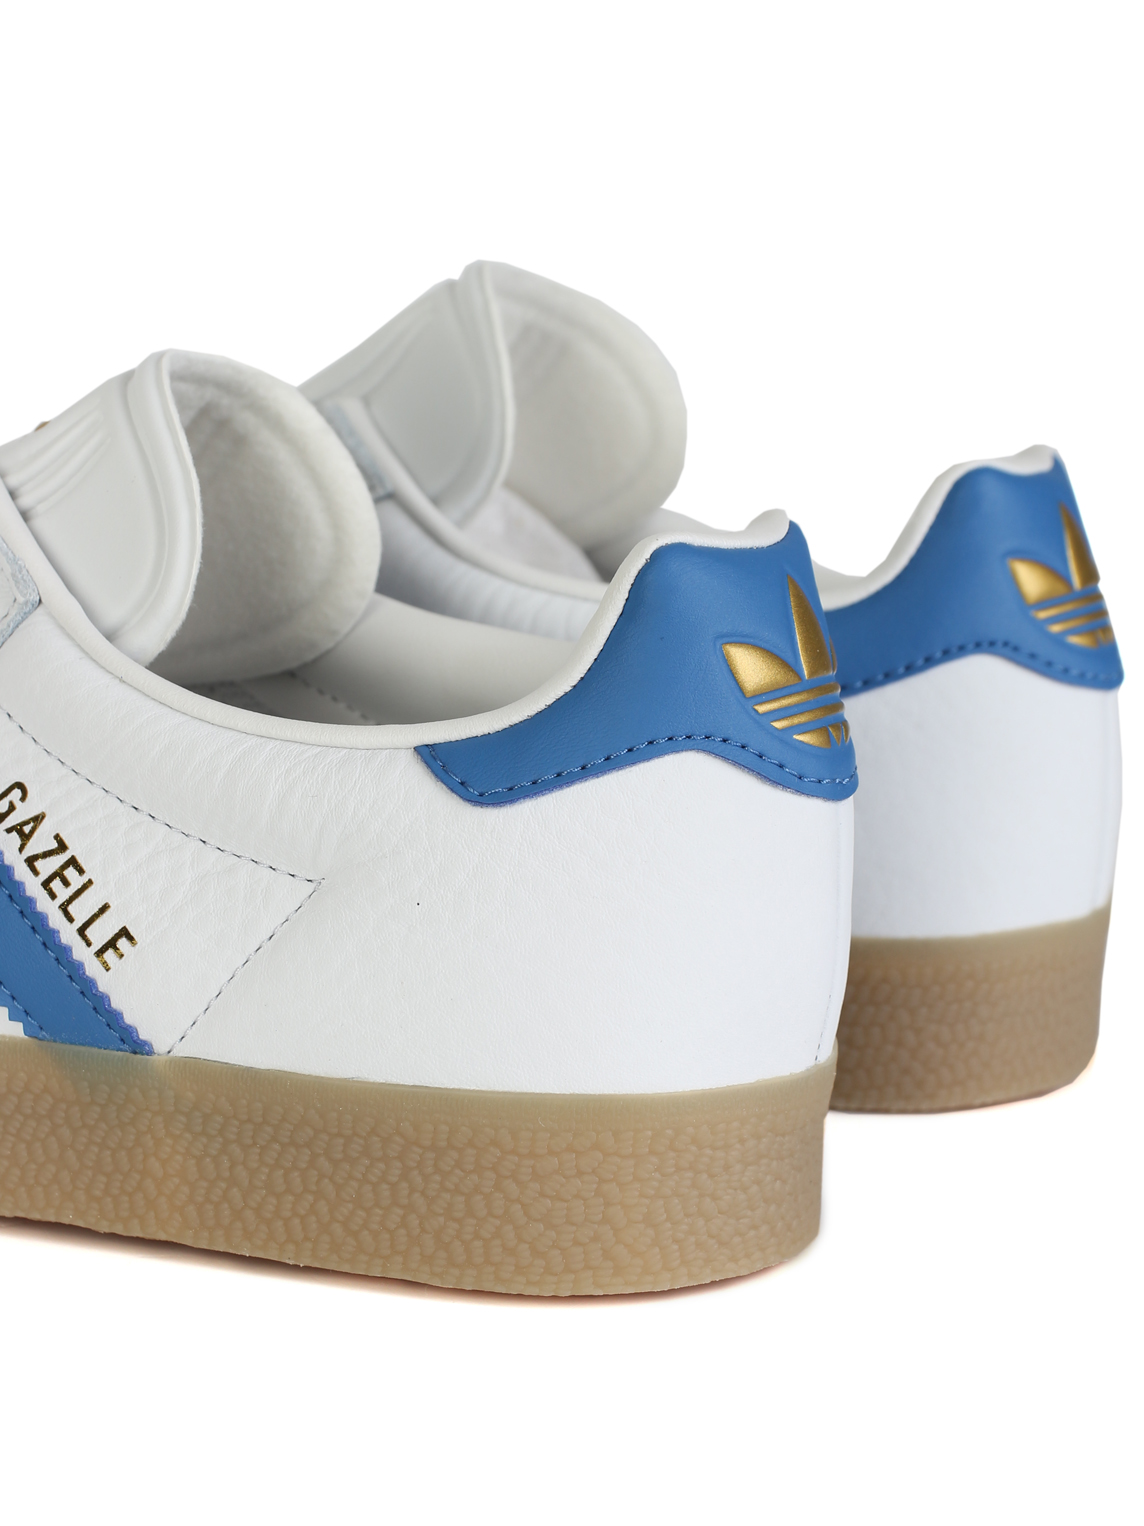 best website c39ac 2ec79 The Adidas Gazelle Super (CQ2798) is available In-store and Online now at  Xile priced at £85. You can shop the style here with Free UK Mainland  delivery and ...